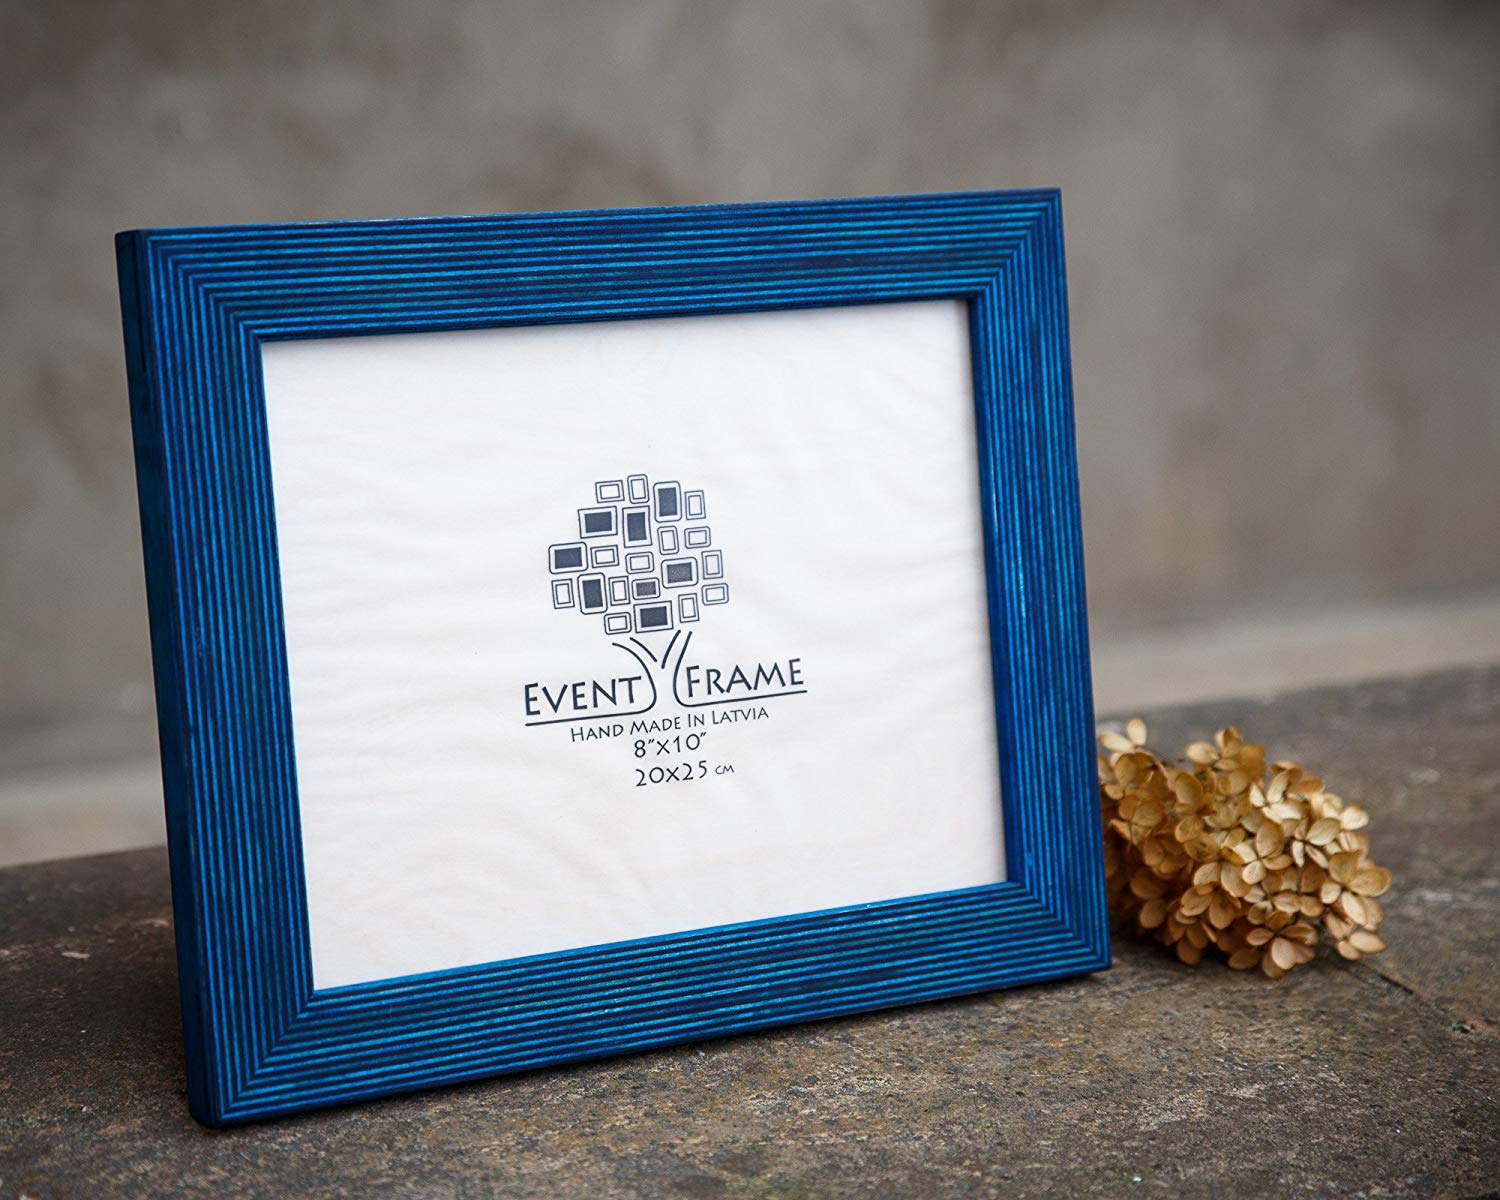 Cheap 5x8 Frame, find 5x8 Frame deals on line at Alibaba.com